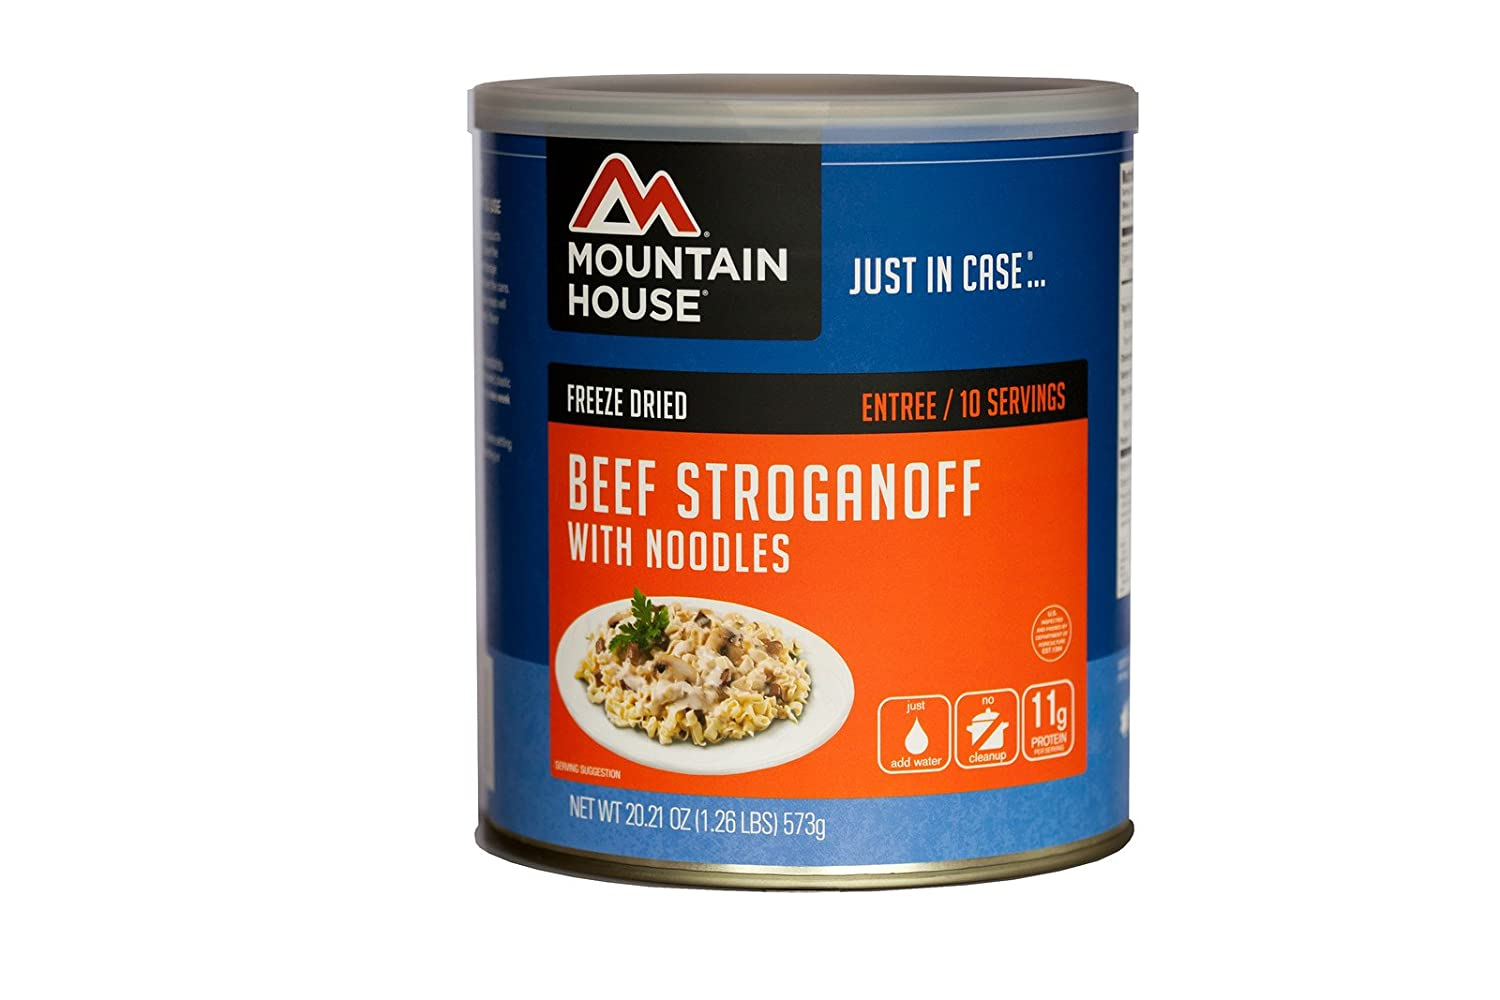 Number ten cans for sale - Amazon Com Mountain House Beef Stroganoff With Noodles 10 Can Camping Freeze Dried Food Sports Outdoors